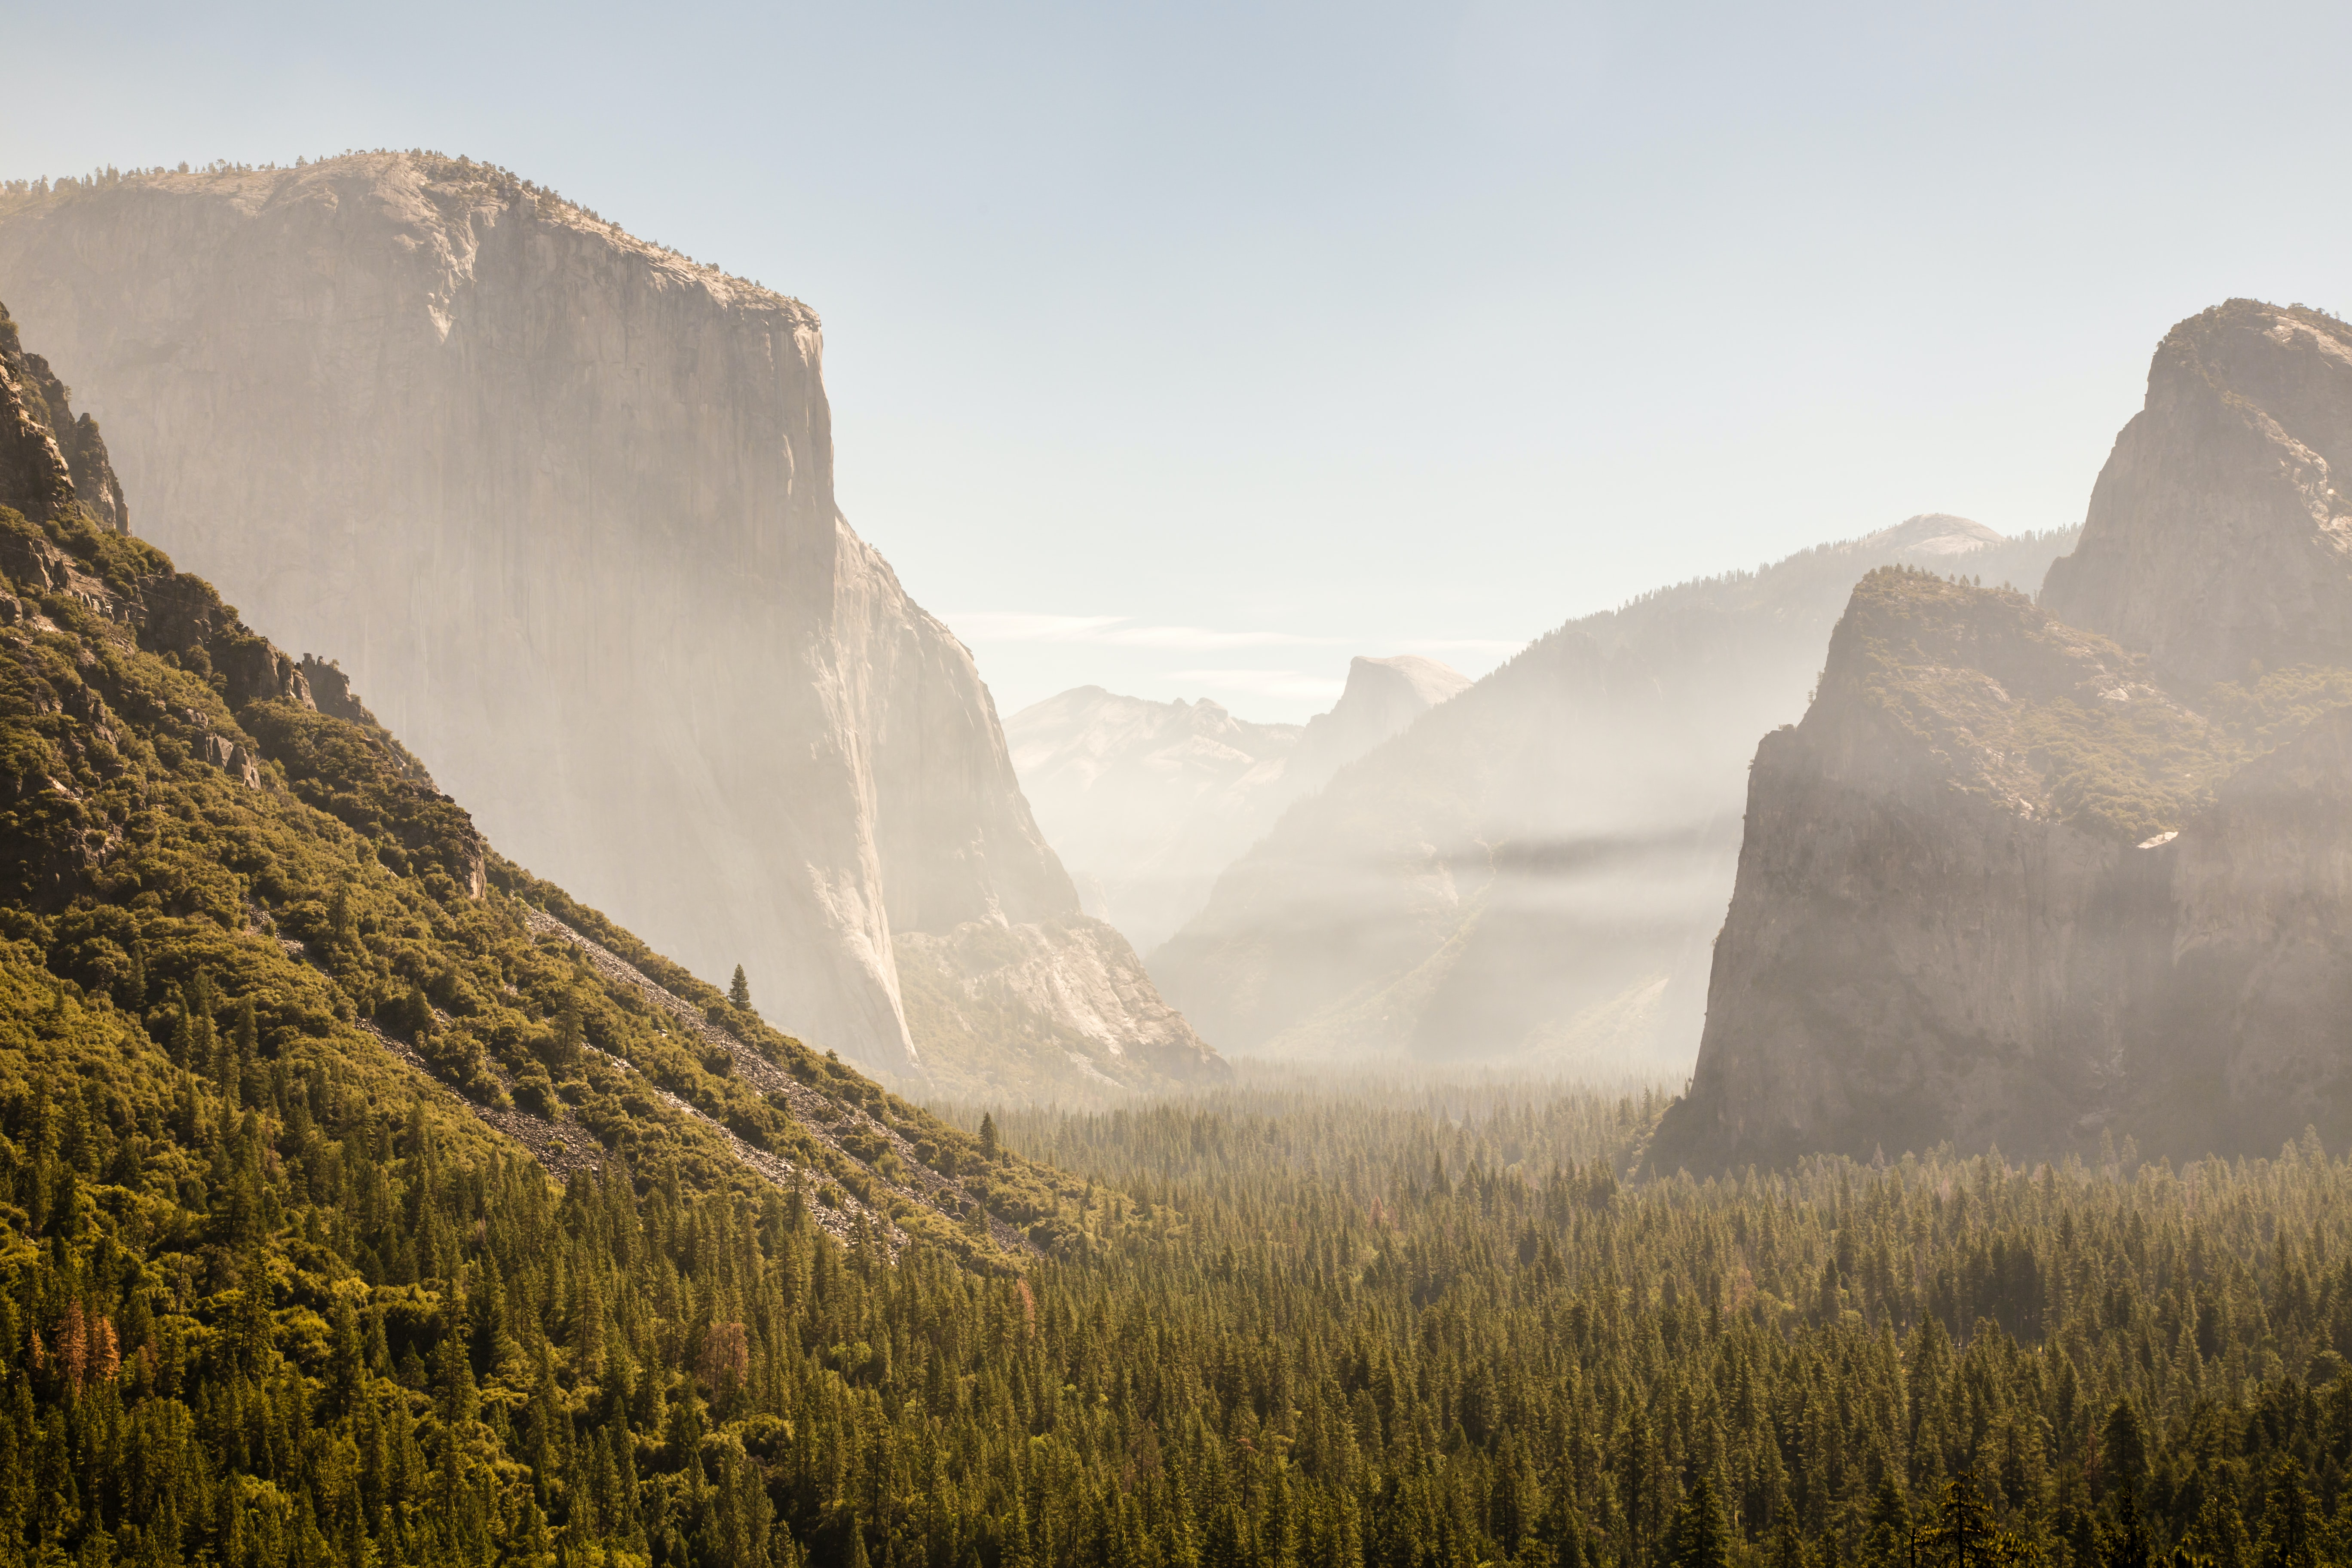 Wooded slopes and granite summits seen from the bottom of Yosemite Valley